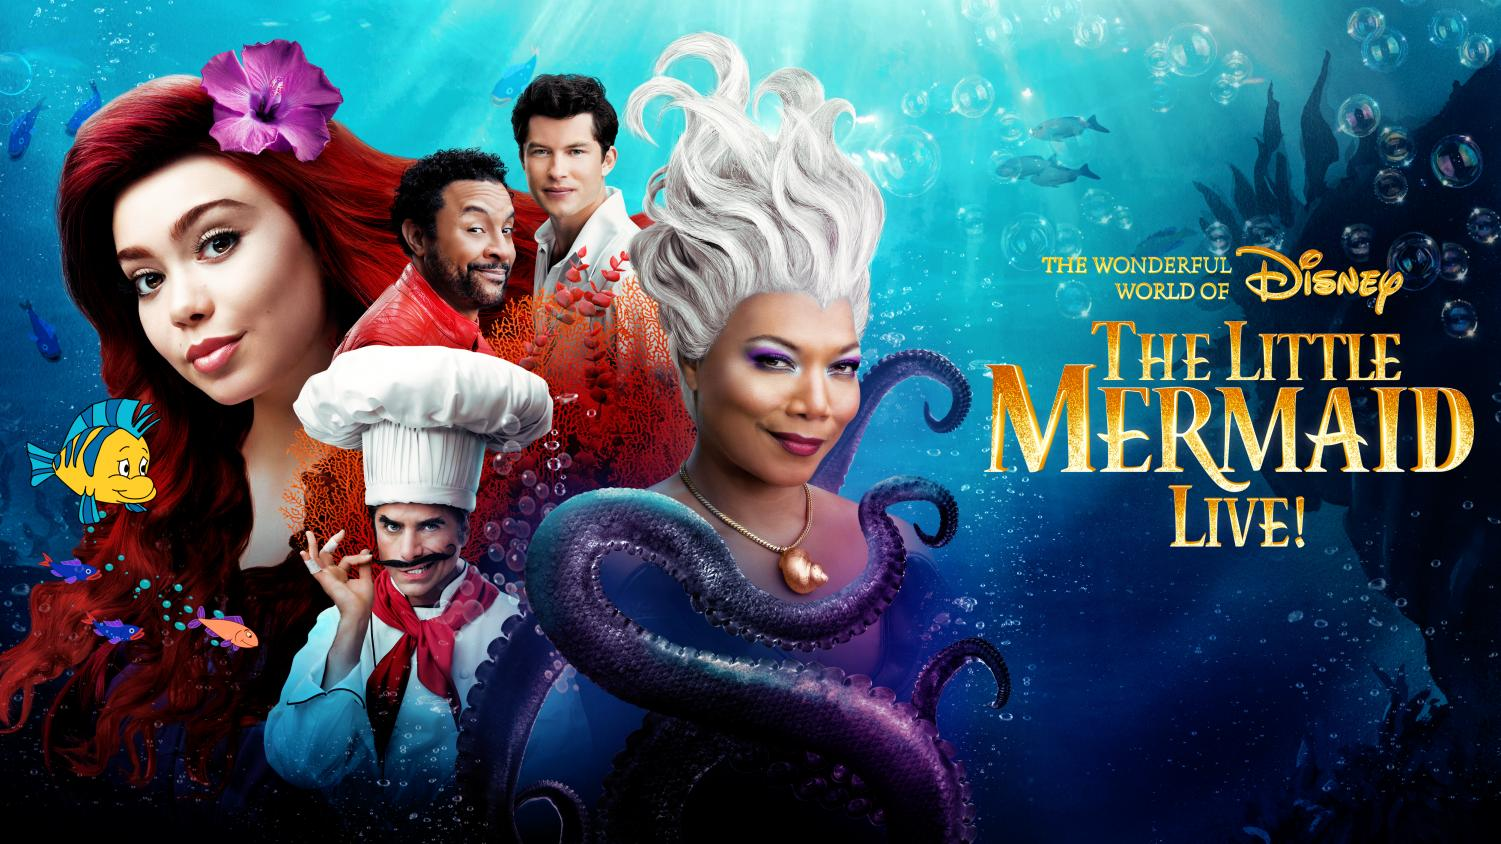 ABC's: The Little Mermaid Live! event aired on November 5th, with many fans looking forward to the event. (ABC)